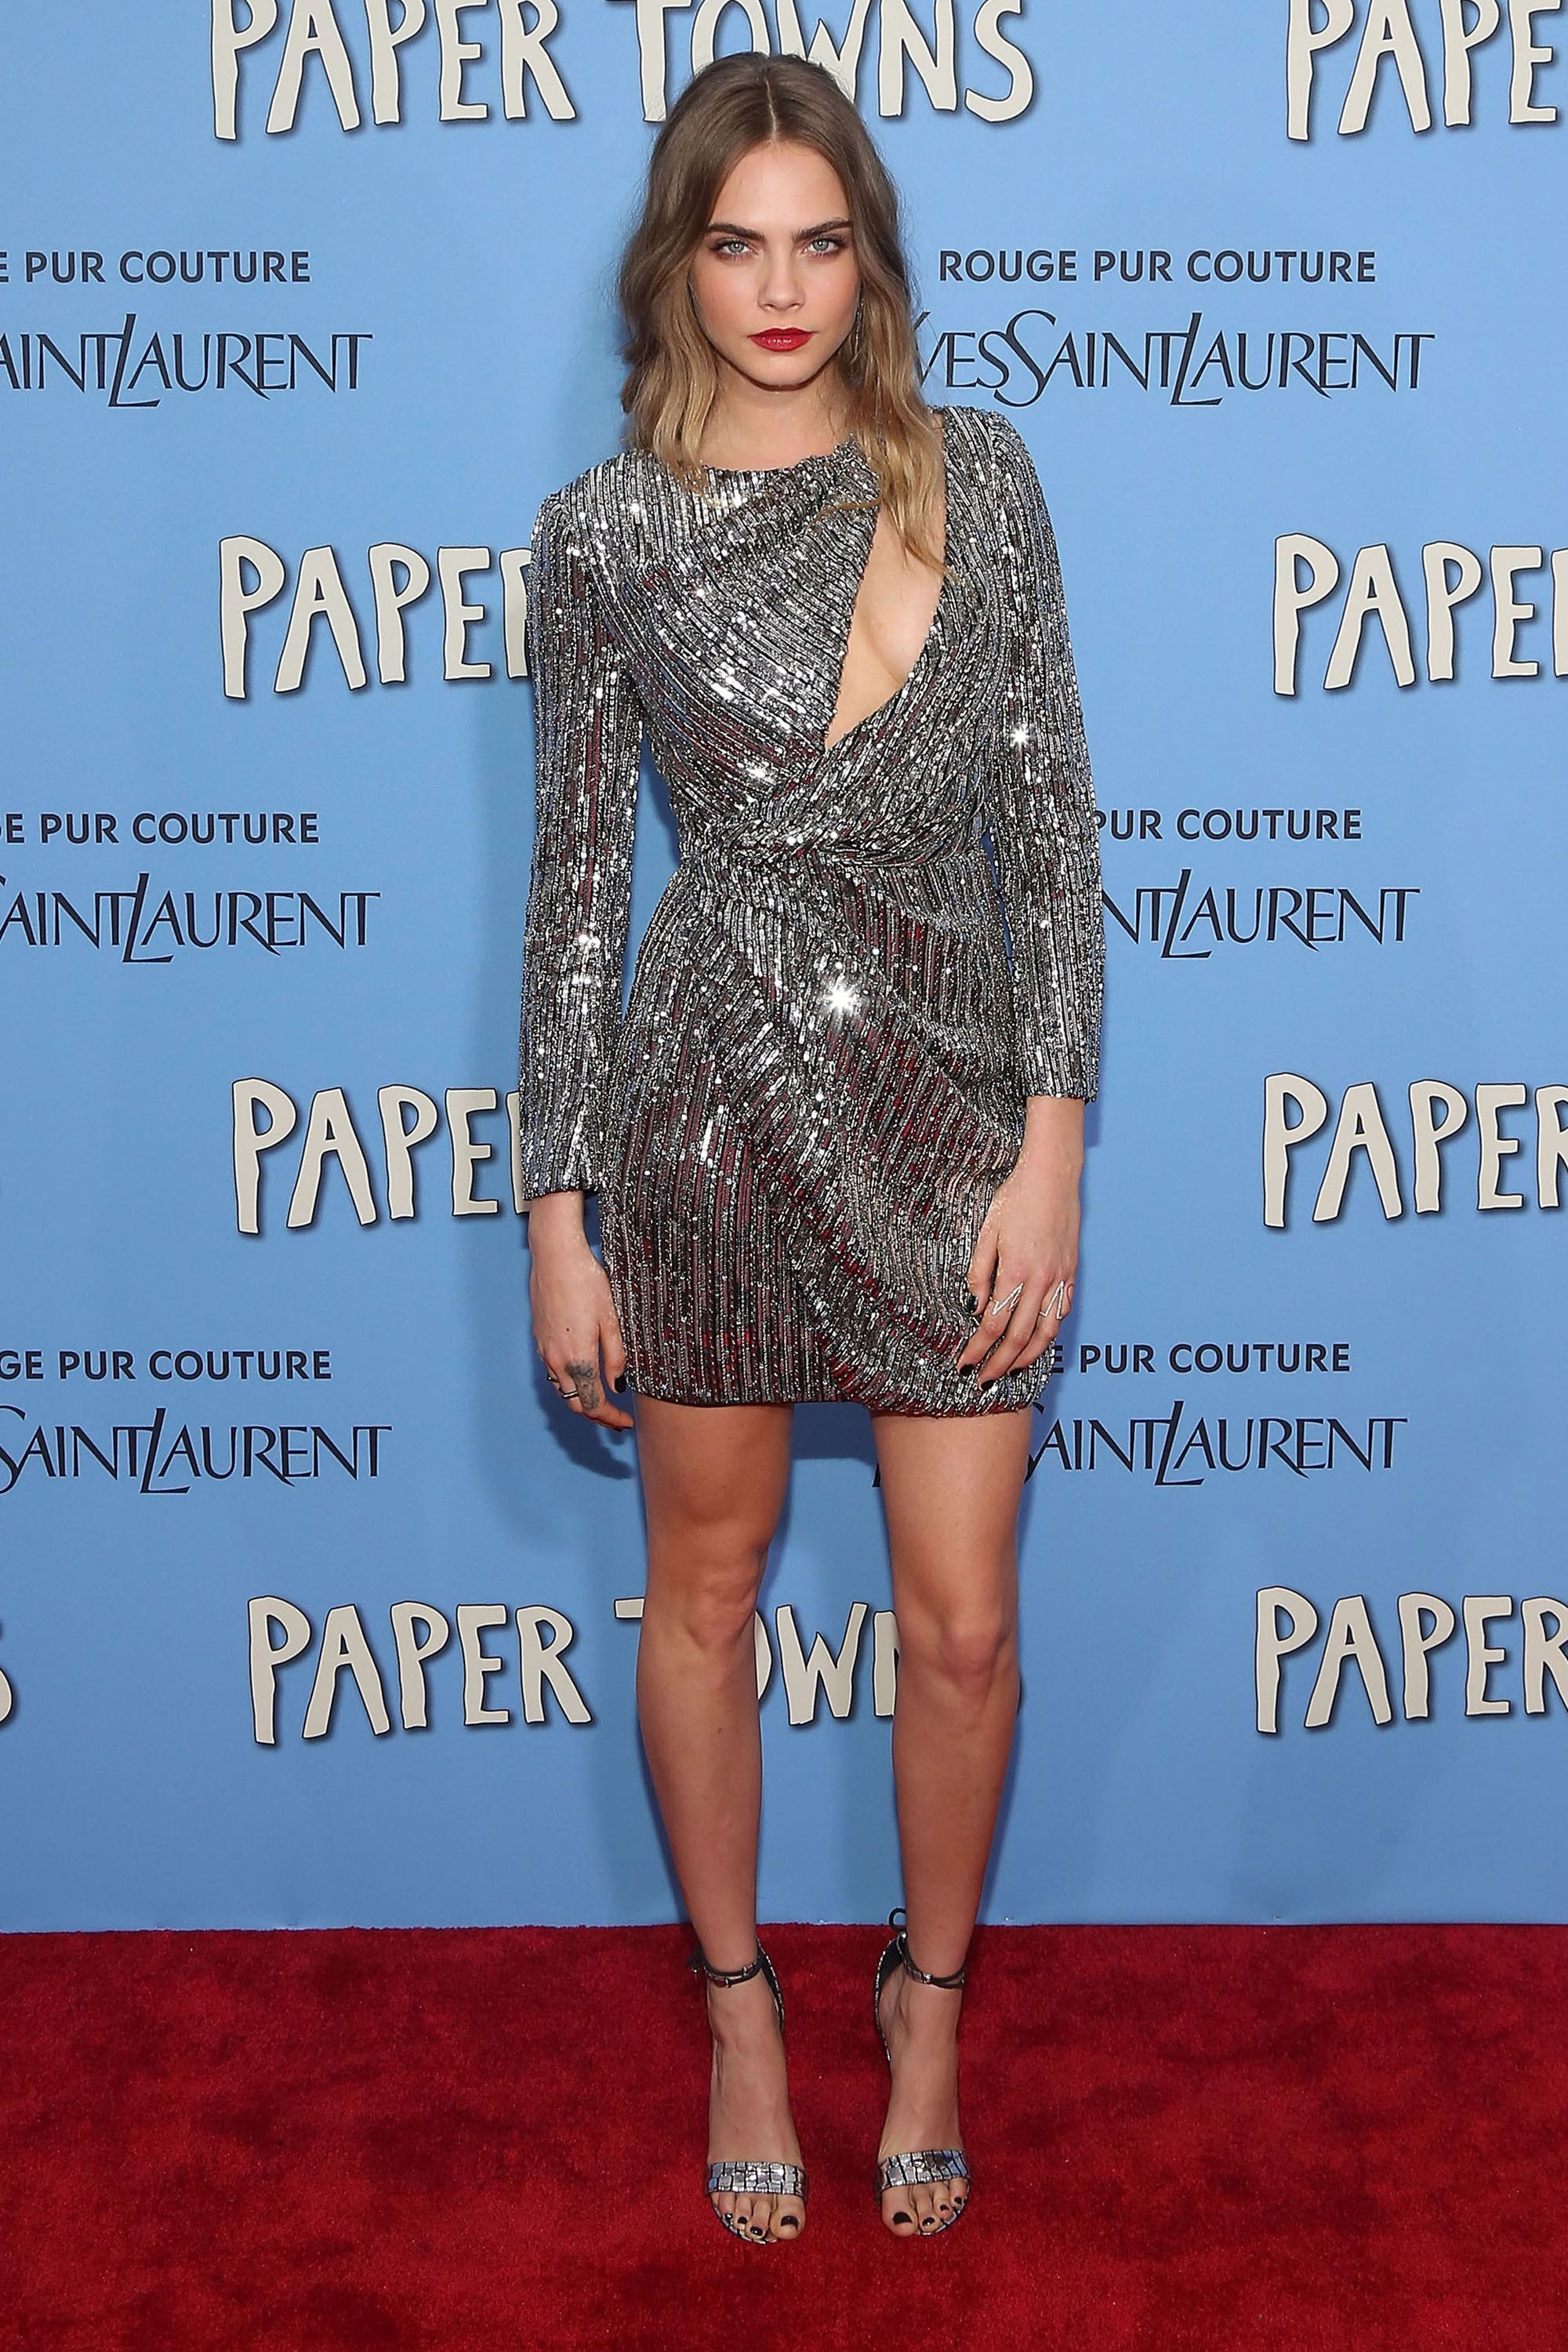 <p><strong>What: </strong>Saint Laurent</p><p><strong>Where: </strong><em>Paper Towns</em> New York premiere</p><p><strong>Why:</strong> The <em>Paper Towns</em> star puts a modern spin on Old Hollywood glamour in a peek-a-boo cutout sequin dress and red lip. </p>